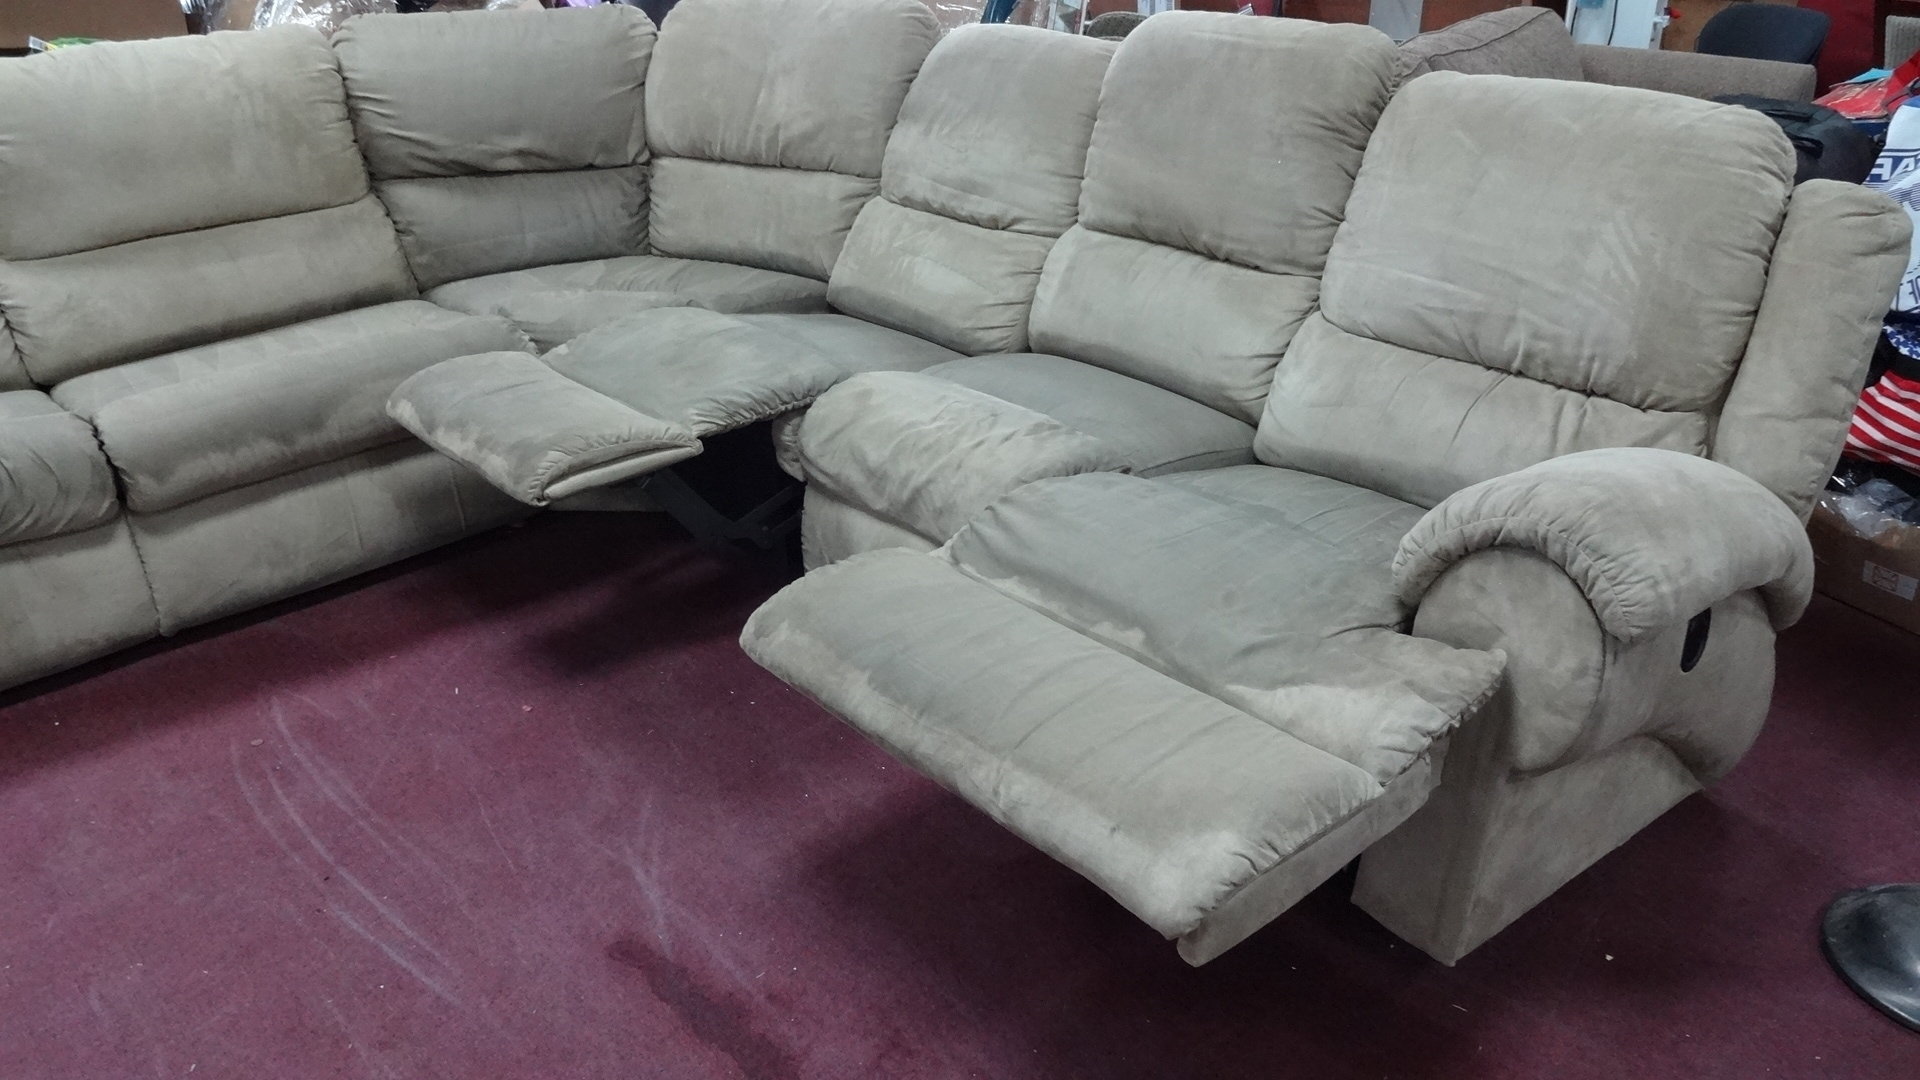 La Z Boy Sectional Sofa Bed • Sofa Bed Intended For Latest The Brick Sectional Sofas (Gallery 7 of 20)